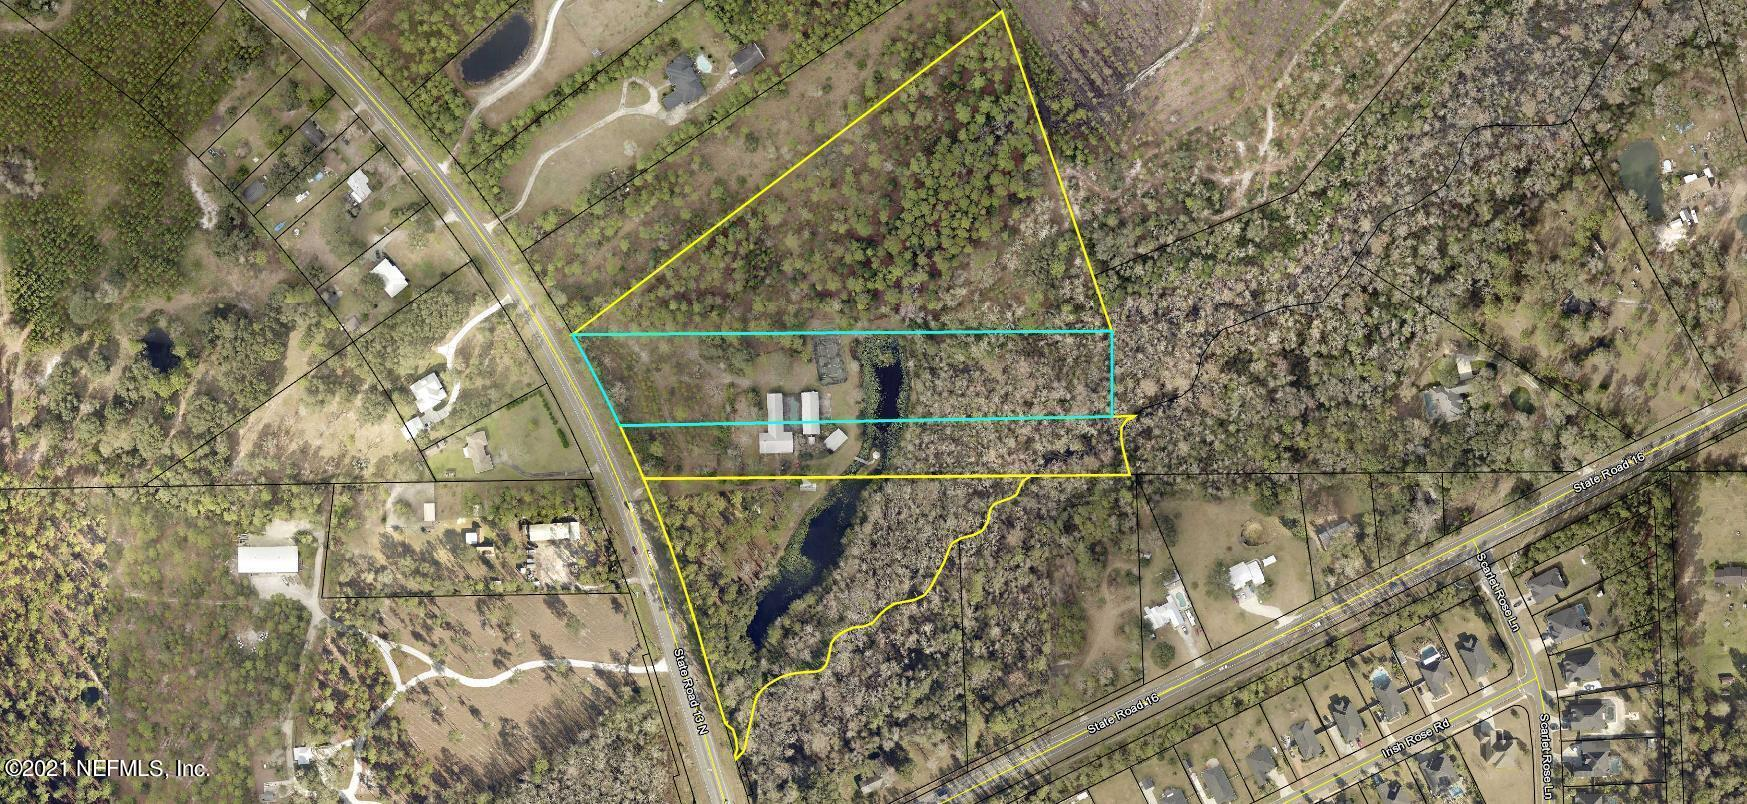 Prime Redevelopment Property 4 parcels, approximately 20.87 in total acreage at the corner of State Road 13 & 16A in the heart of all of the redevelopment in St. Johns.  Approx 950 Feet of frontage on State Road 13.   Currently used as a single family residence, these lots are ready for redevelopment.  Currently zoned OR, and current use is multifamily under 10 units.  Additional parcels available for more acreage, call for details.4 Parcels, approximately 20.87 in total acreageParcel ID # 0121400010Parcel ID # 0121400020Parcel ID # 0121400030Parcel ID # 0130200040